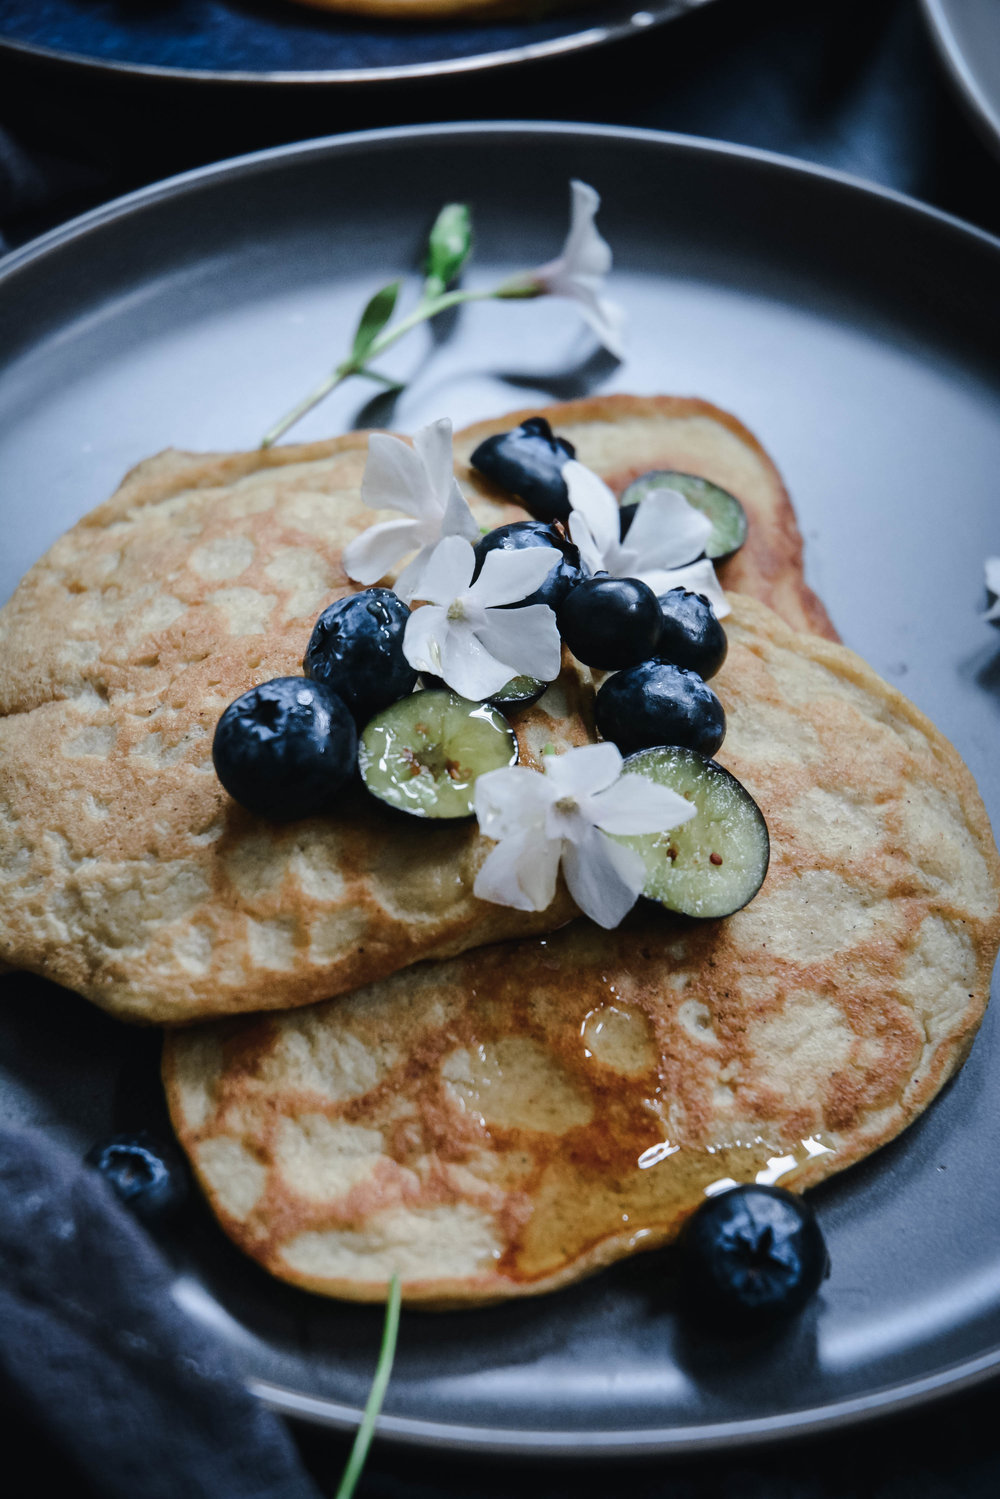 cardamom pancakes with orange blossom water